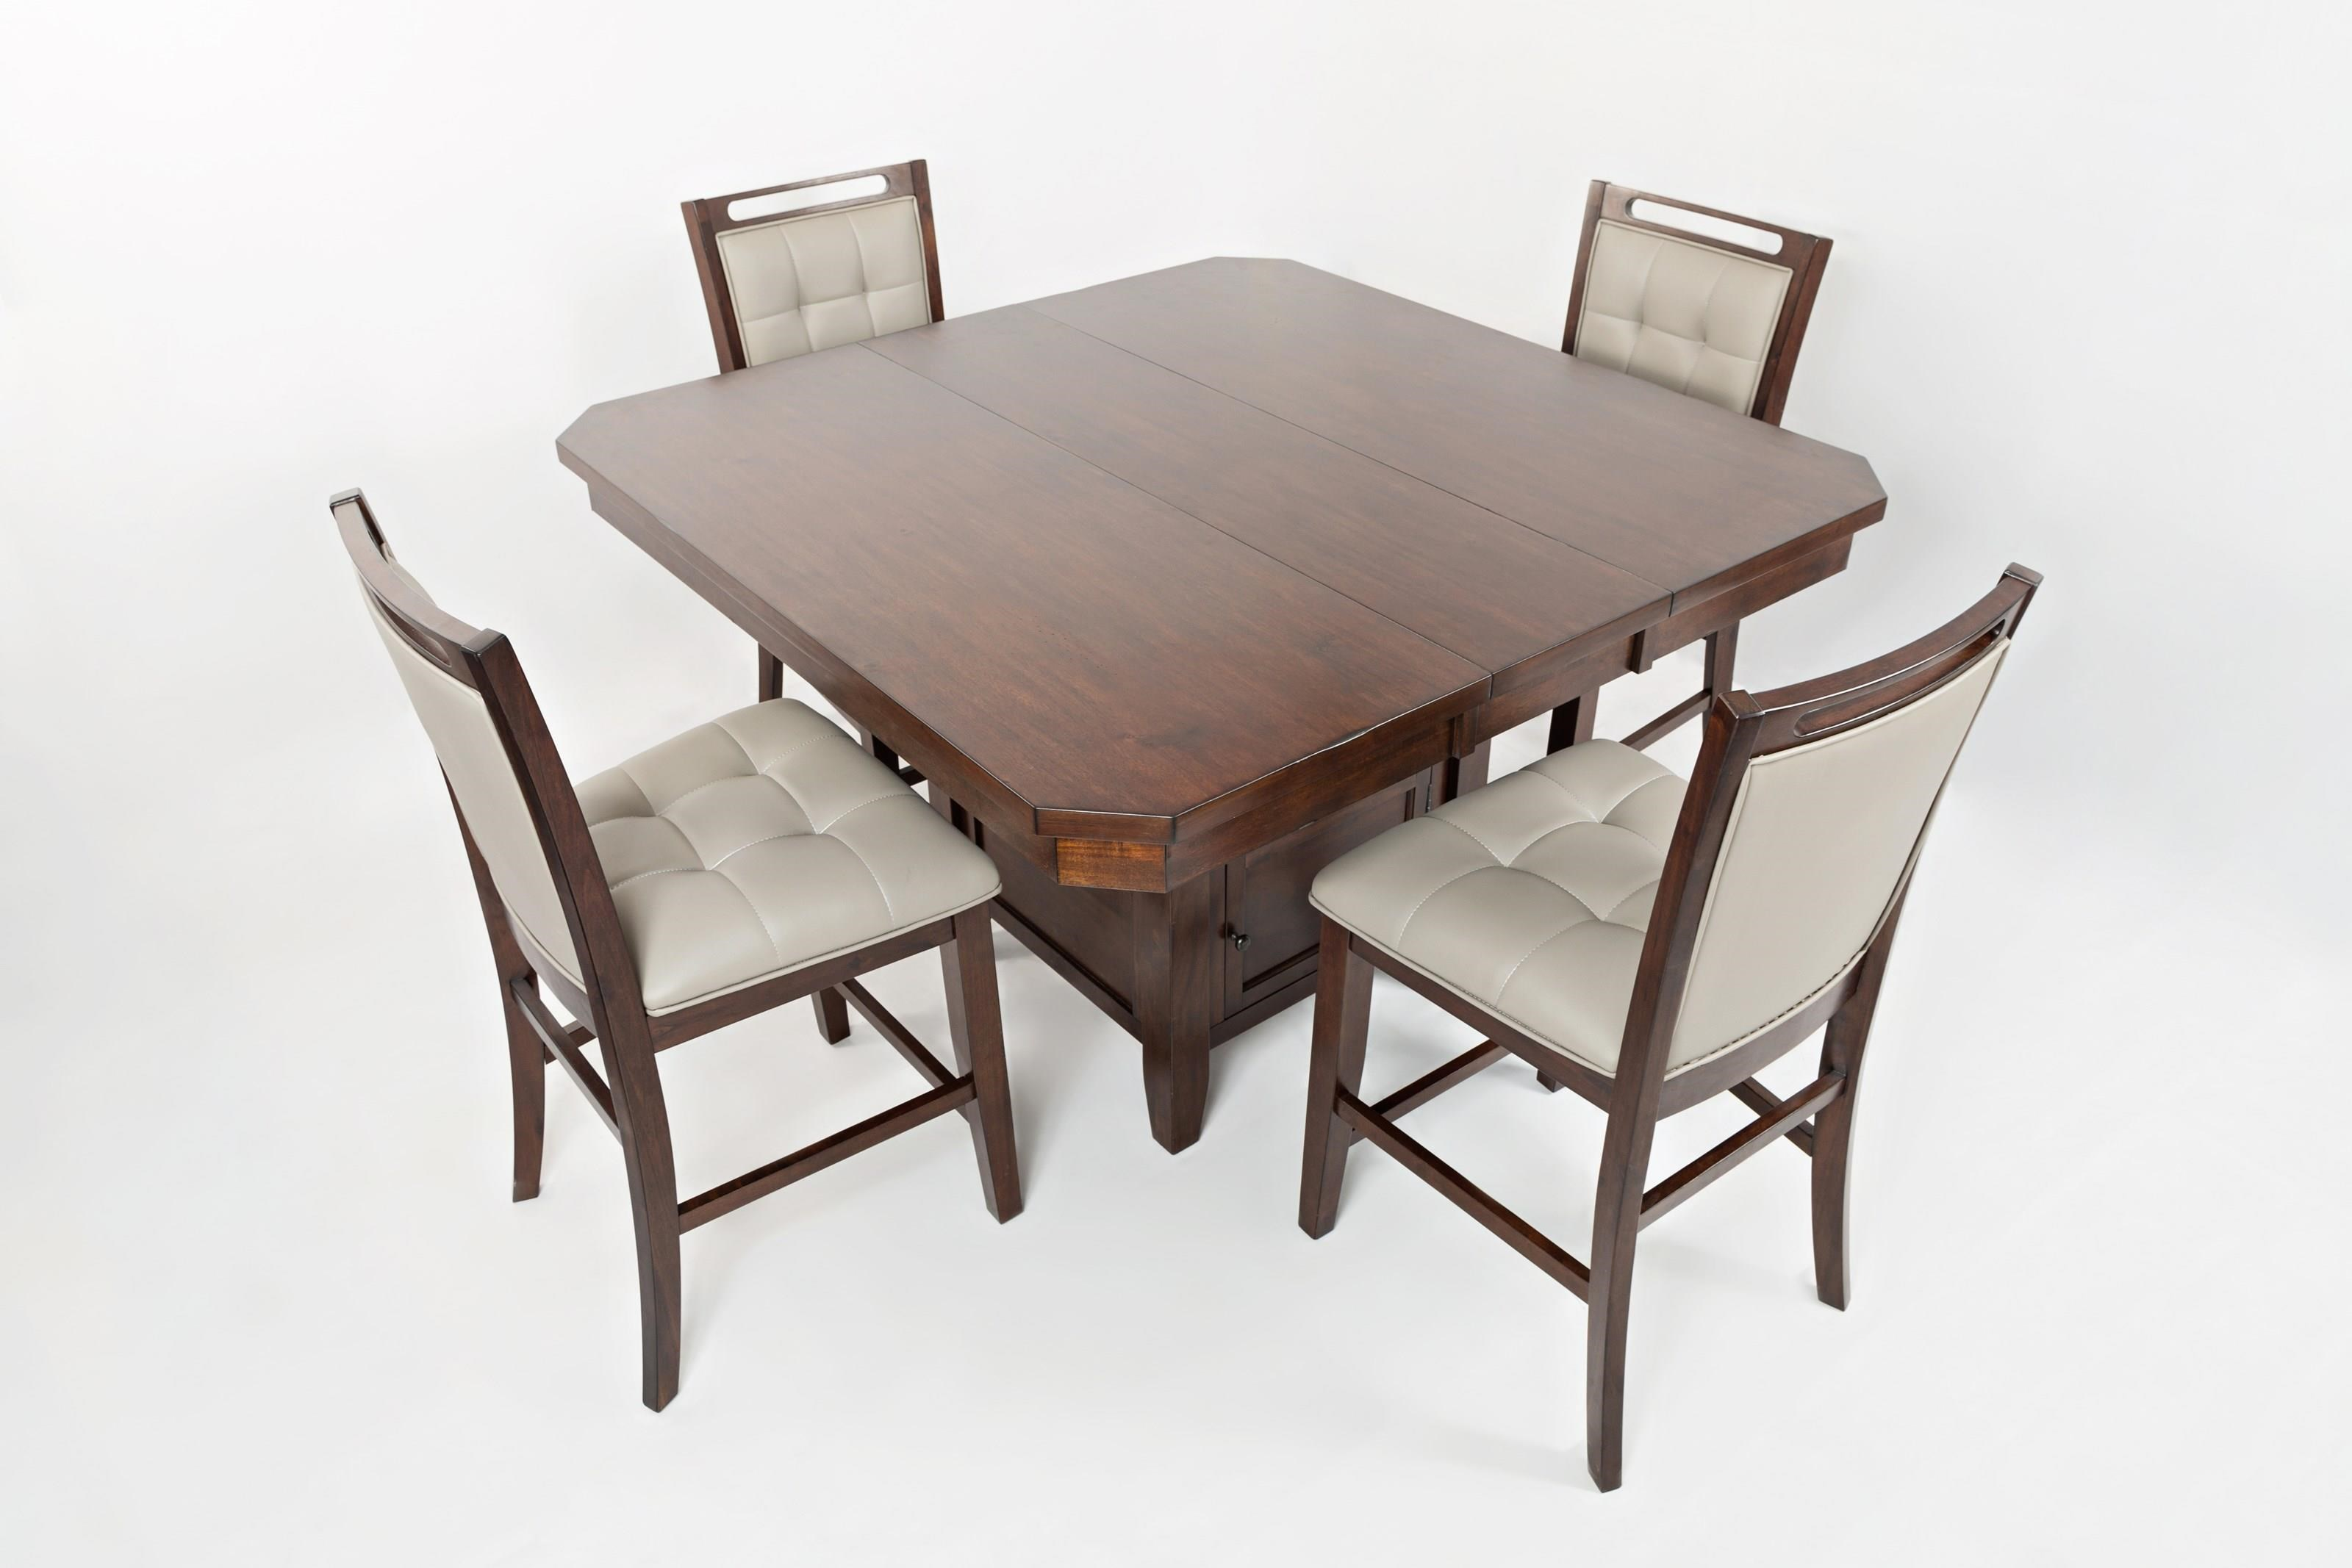 Jofran Manchester 5 Piece Table & Chair Set - Item Number: D16167-5PC